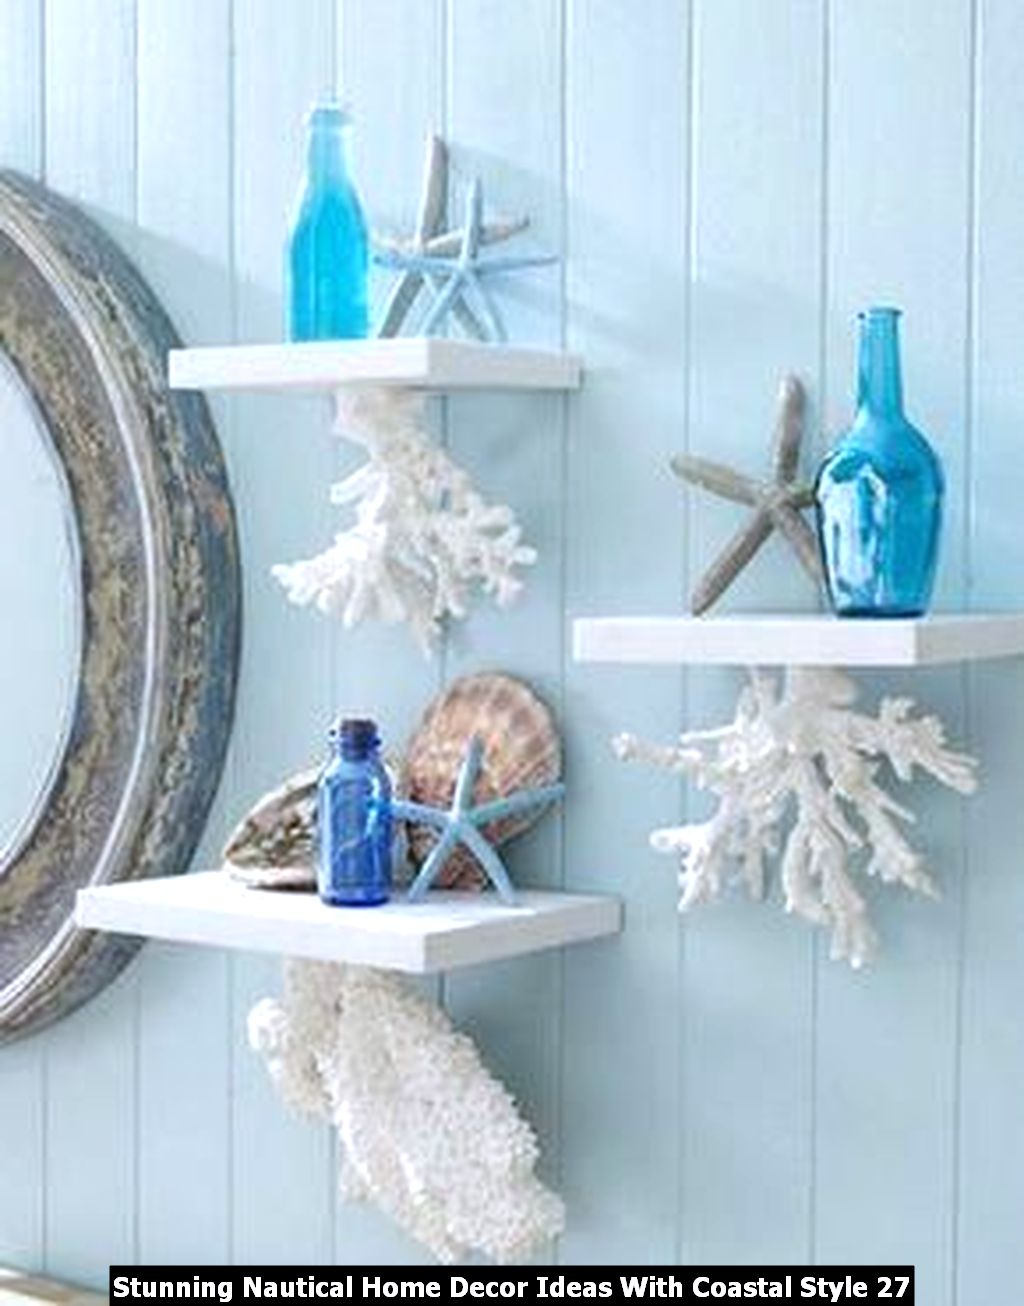 Stunning Nautical Home Decor Ideas With Coastal Style 27